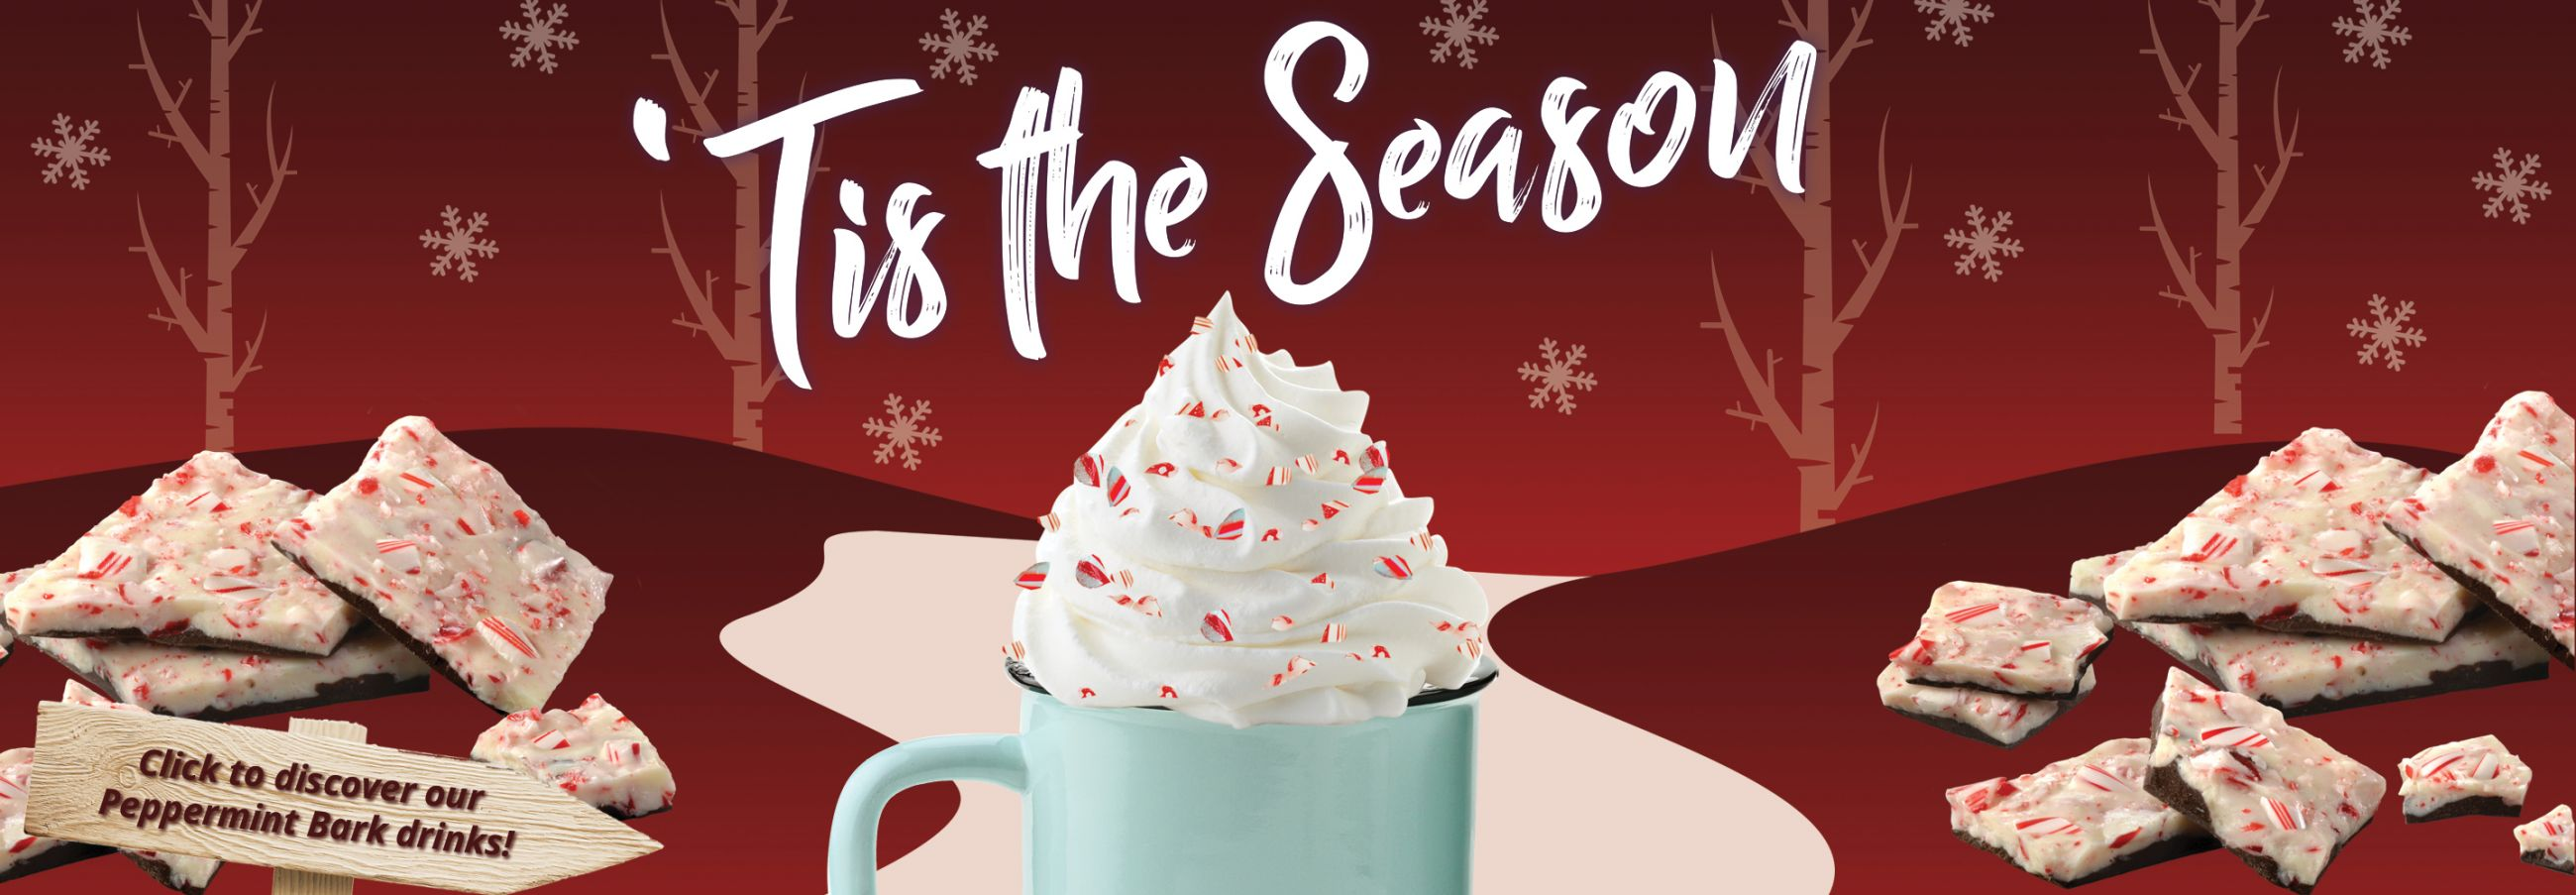 Photo of a peppermint bark drink in a mug topped with whipped cream and candy cane crunch set against a winter scene. Click image to learn more about available drink flavors.